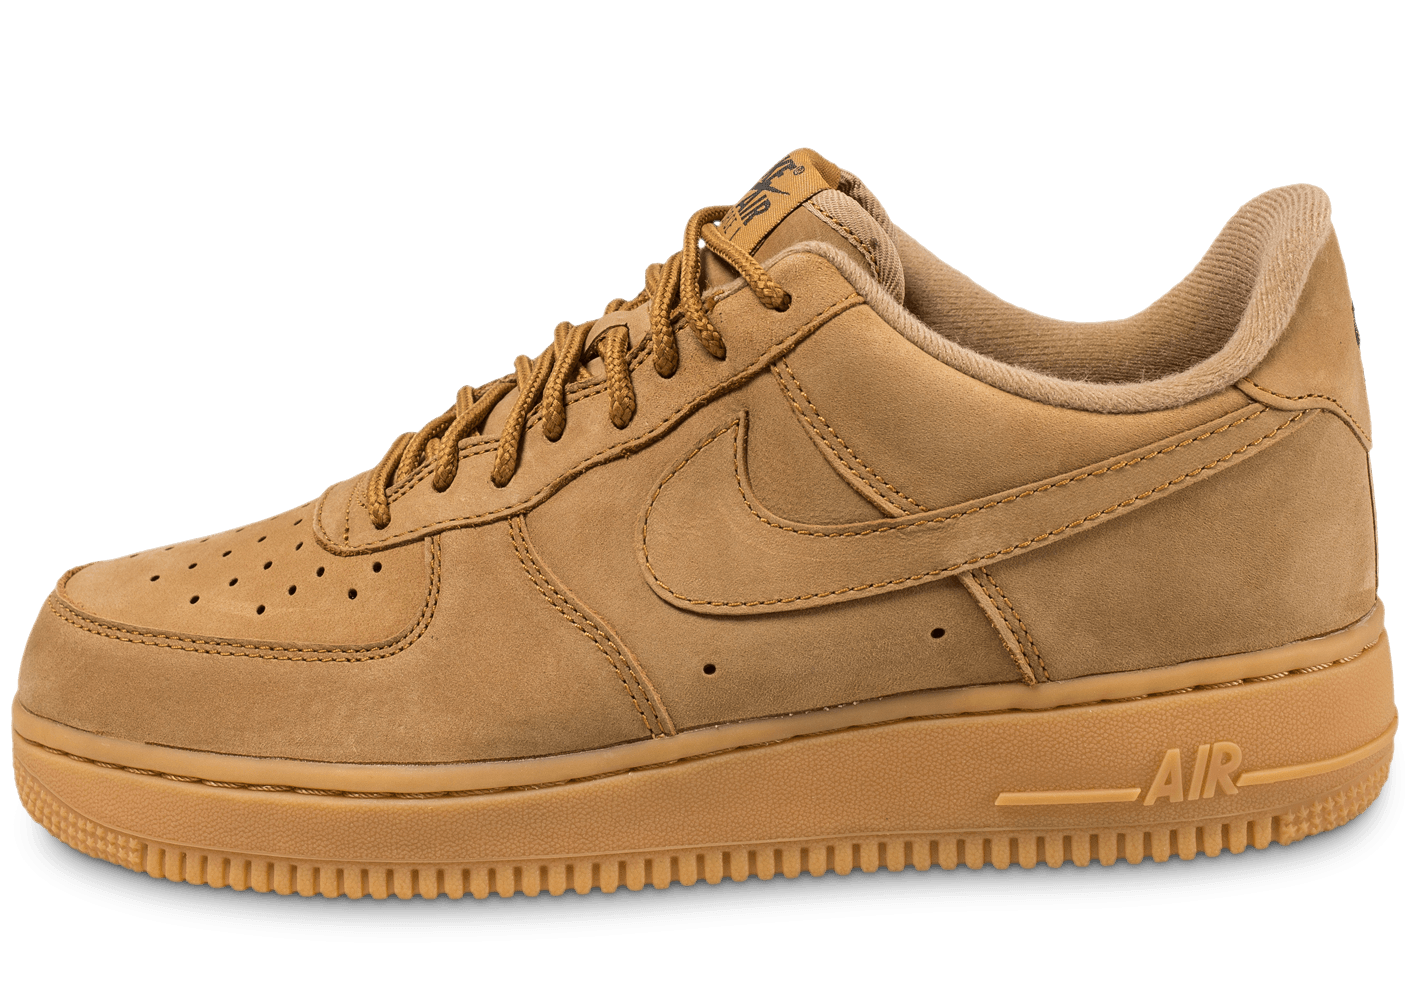 huge selection of 3575e 0c853 nike air force 1 marron